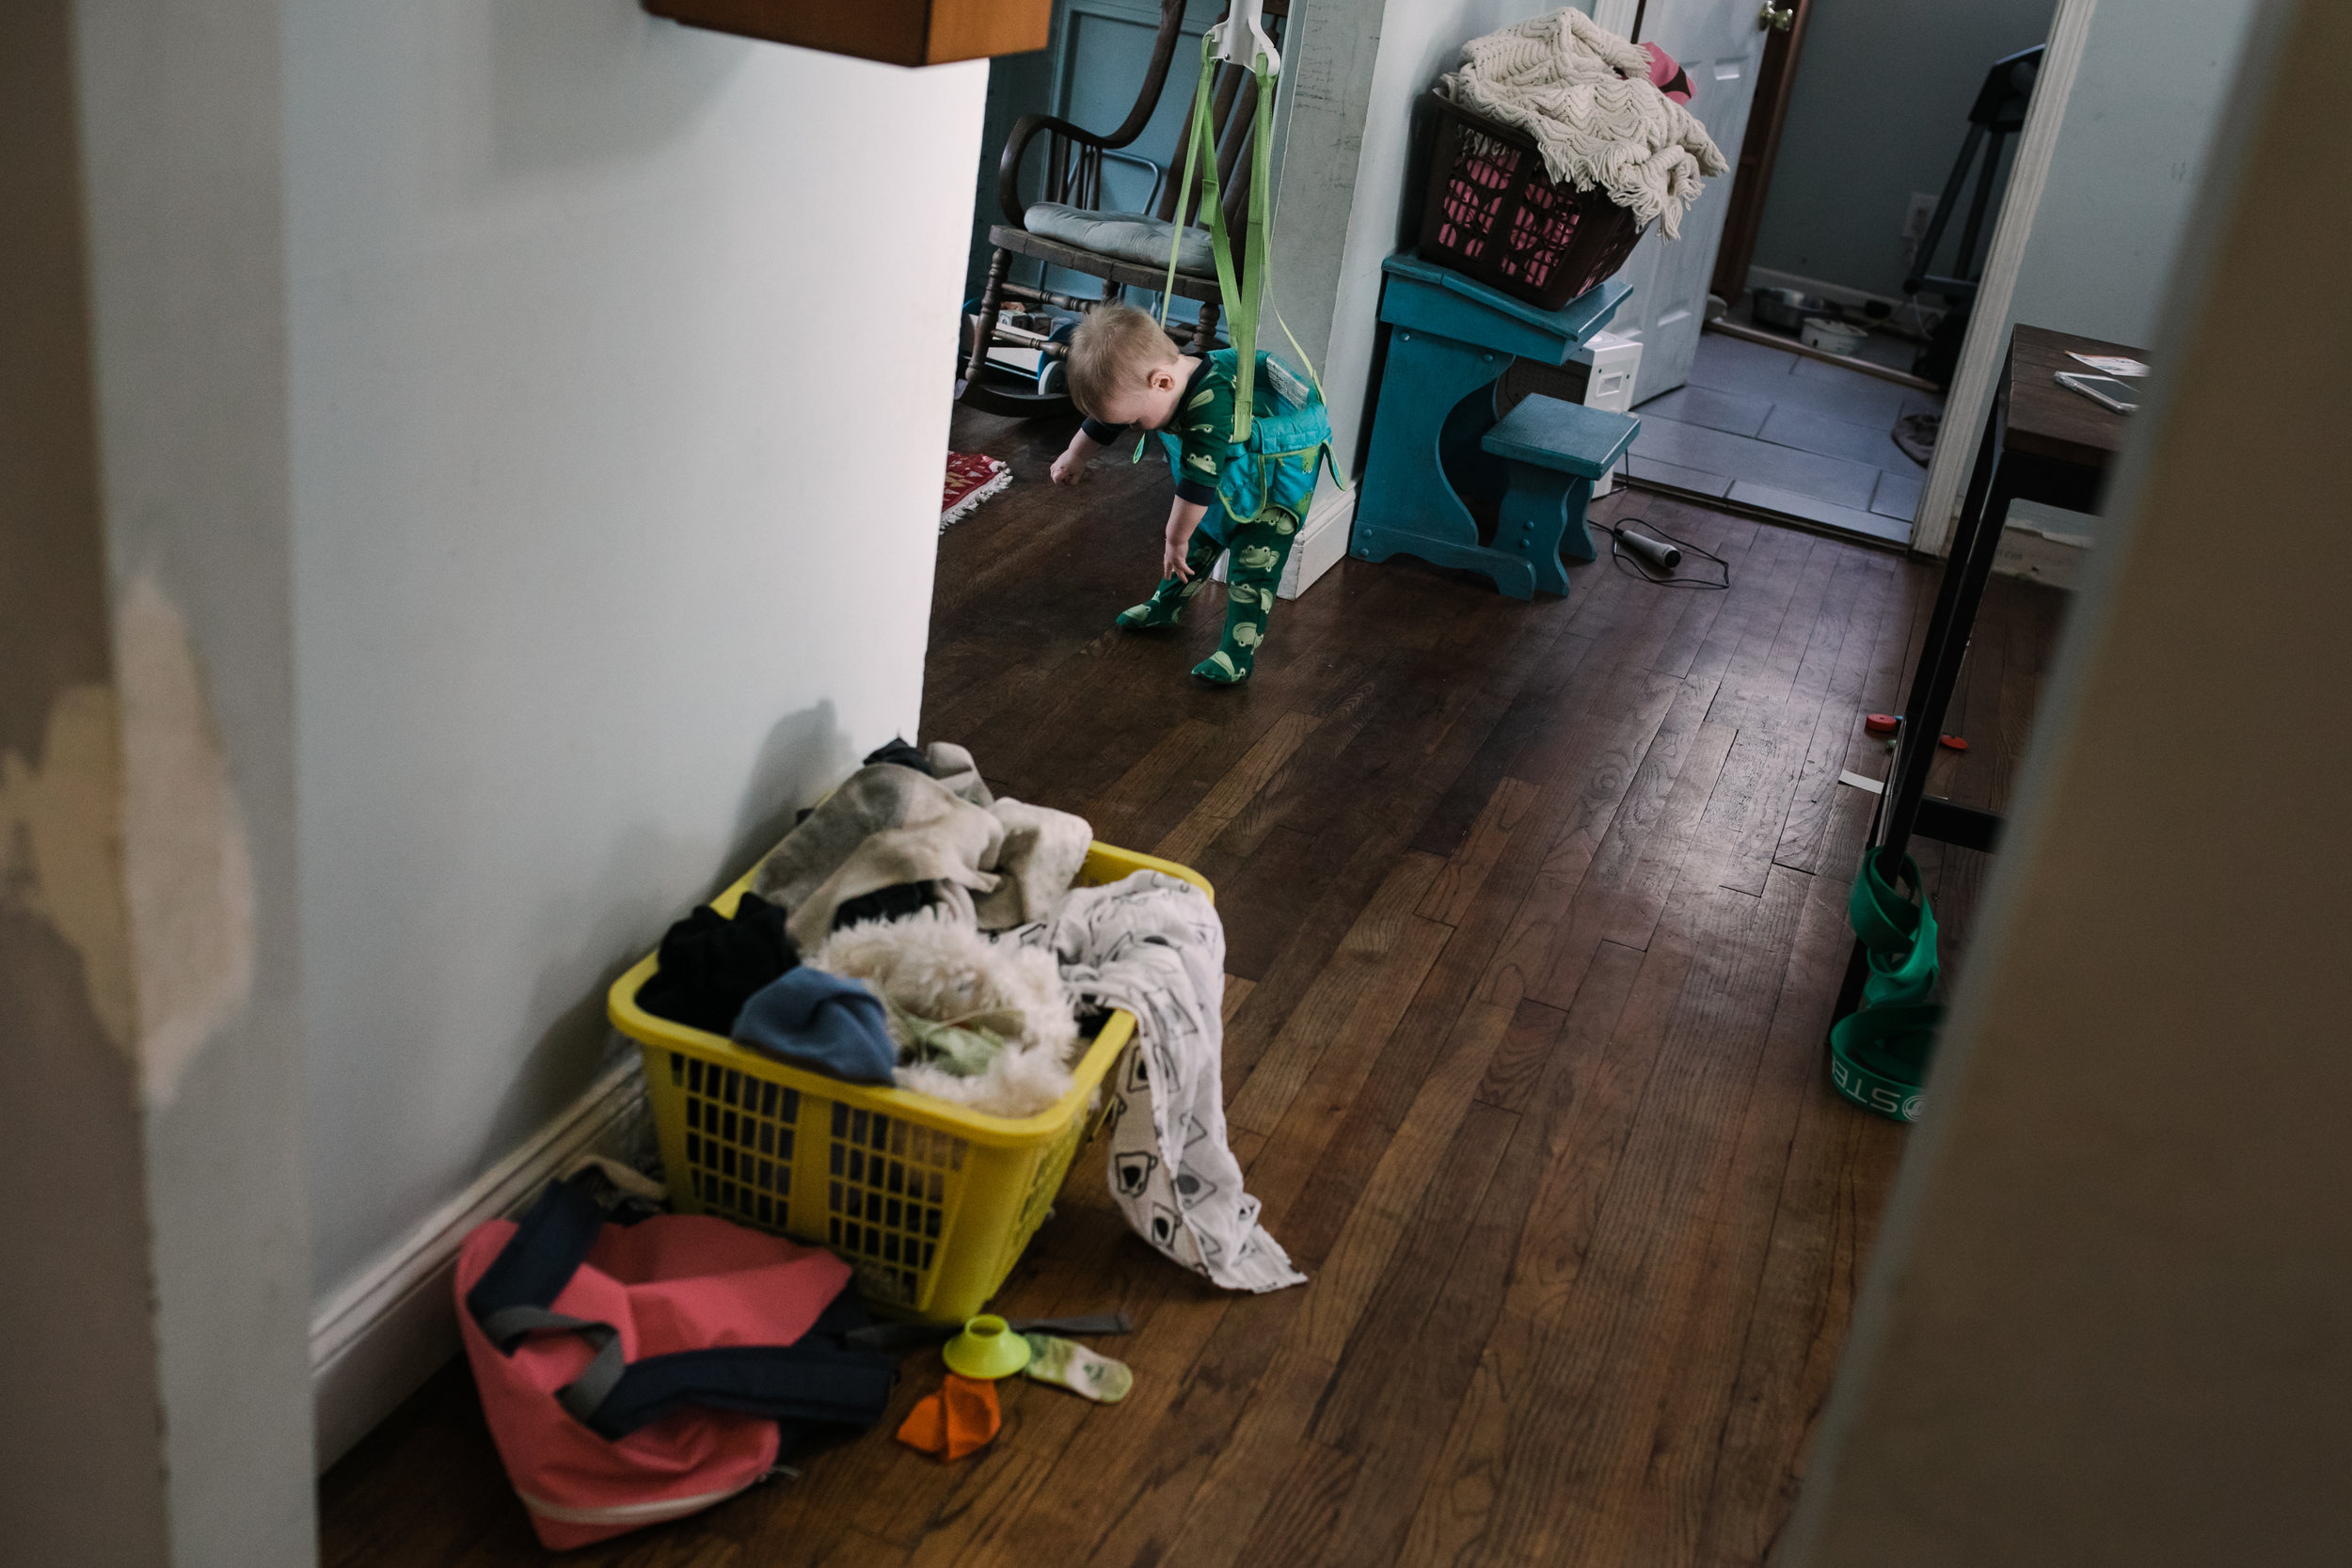 baby slumps over in a jumper flanked by full laundry baskets